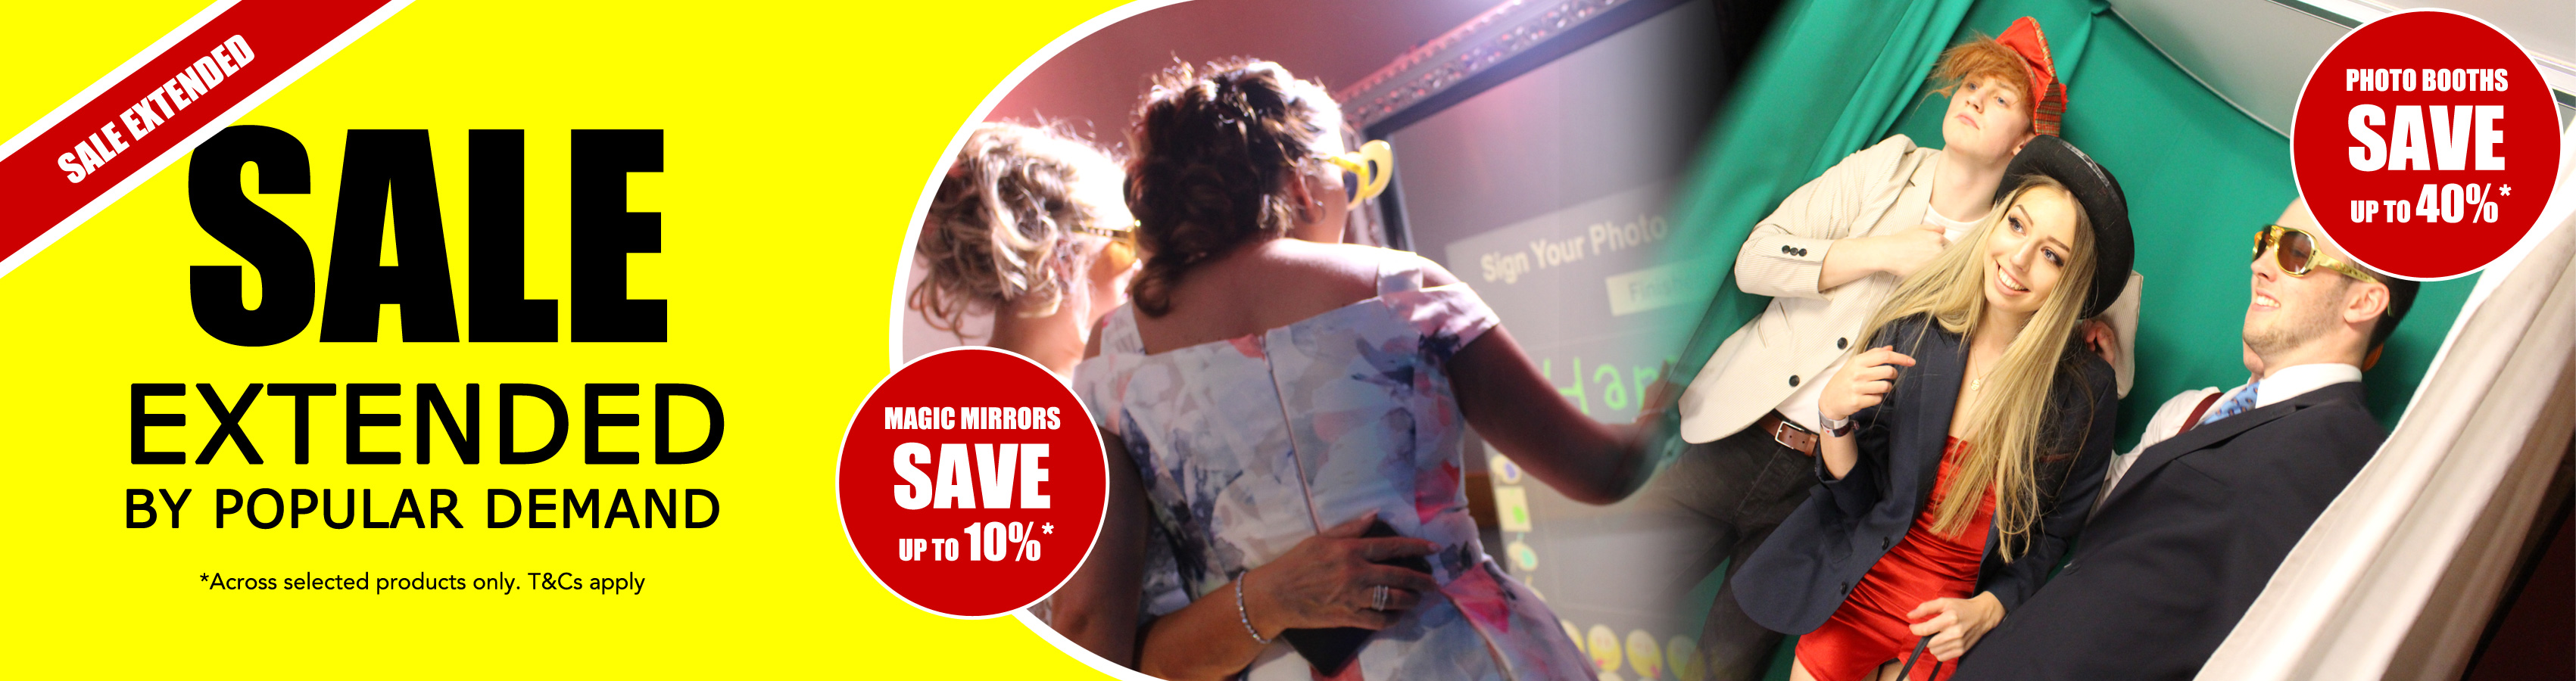 Photobooths Photo Booth Sale September